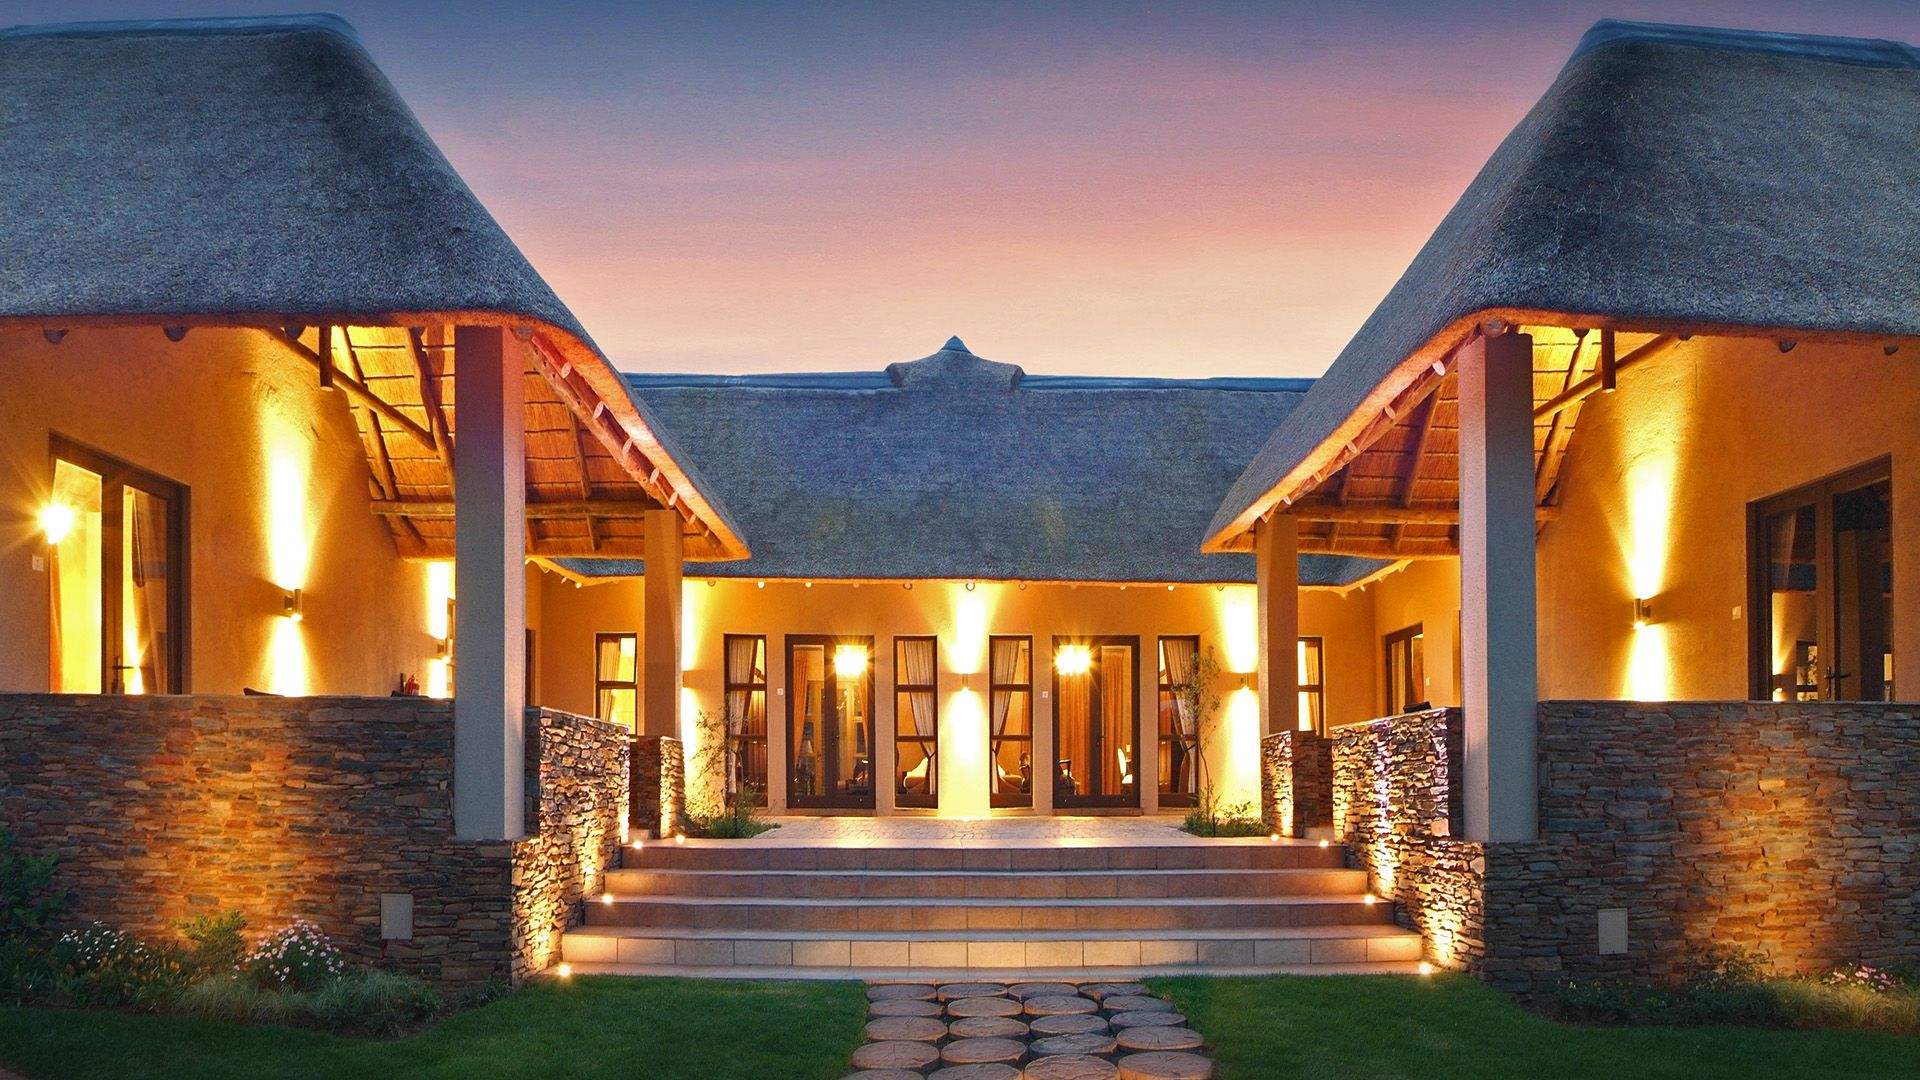 Valley Lodge & Spa in Magaliesburg, South Africa